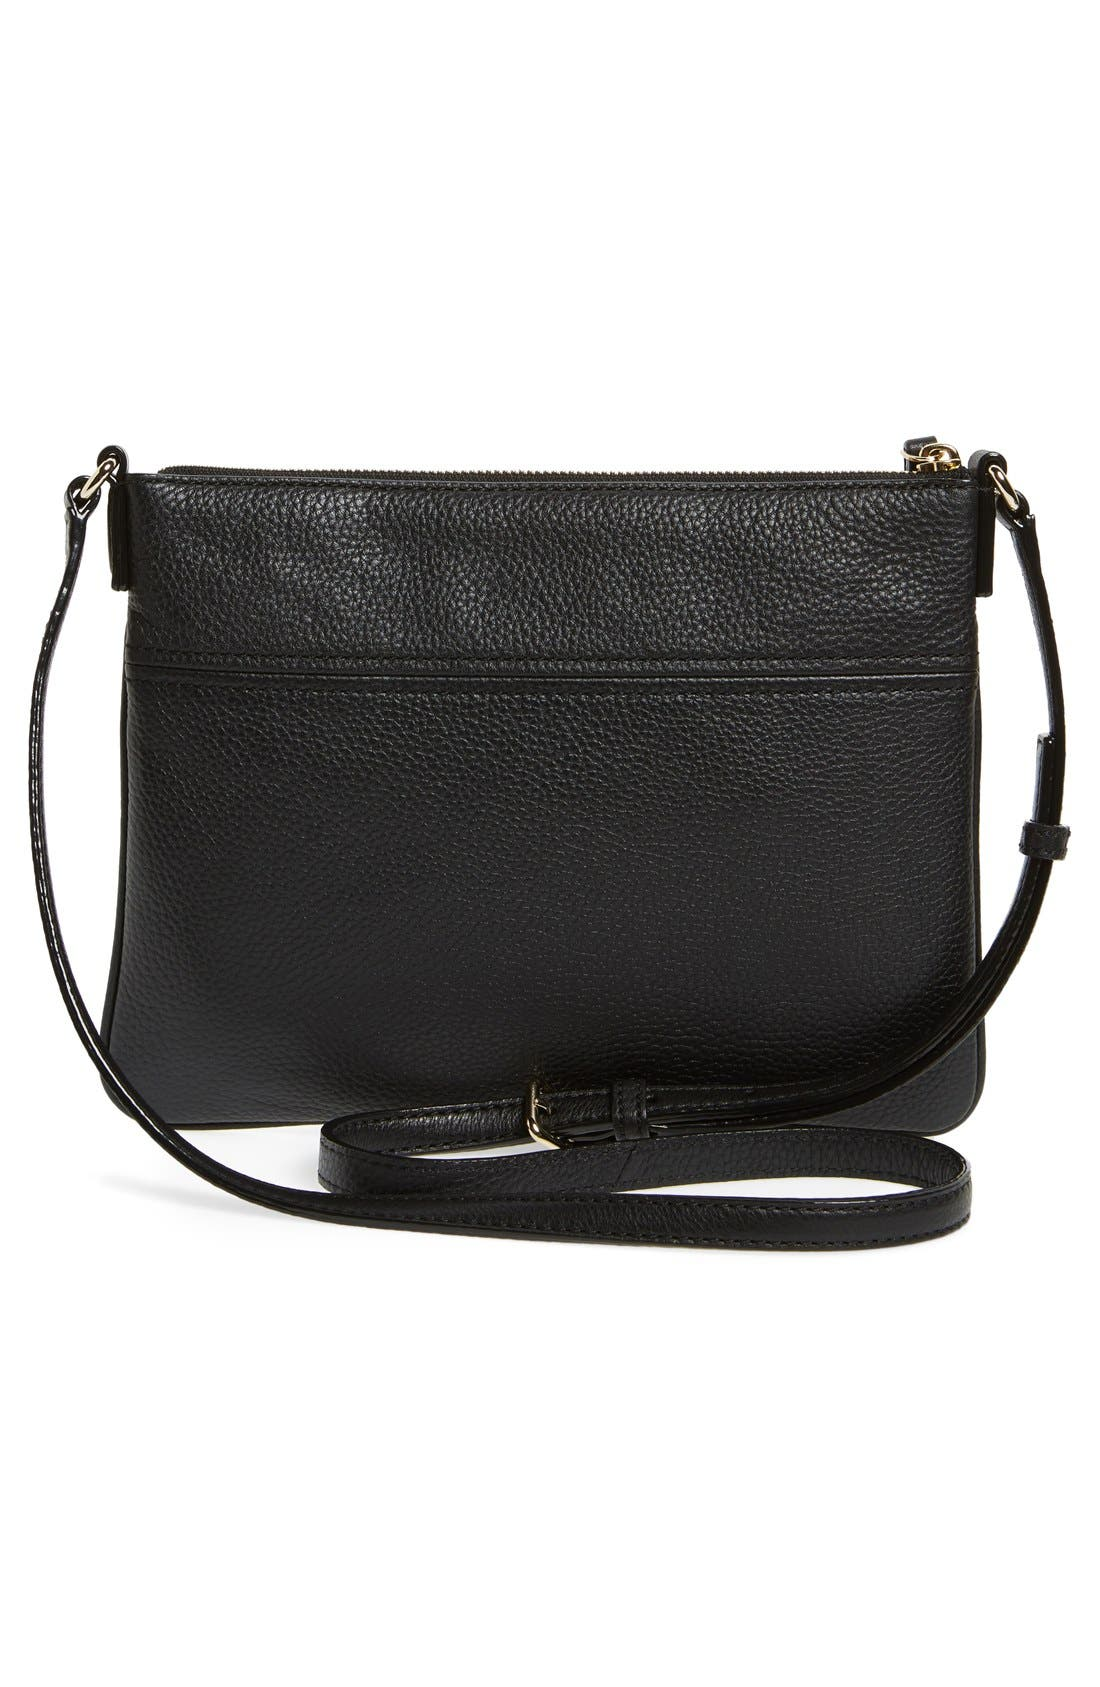 Alternate Image 3  - kate spade new york 'cobble hill - gabriele' pebbled leather crossbody bag